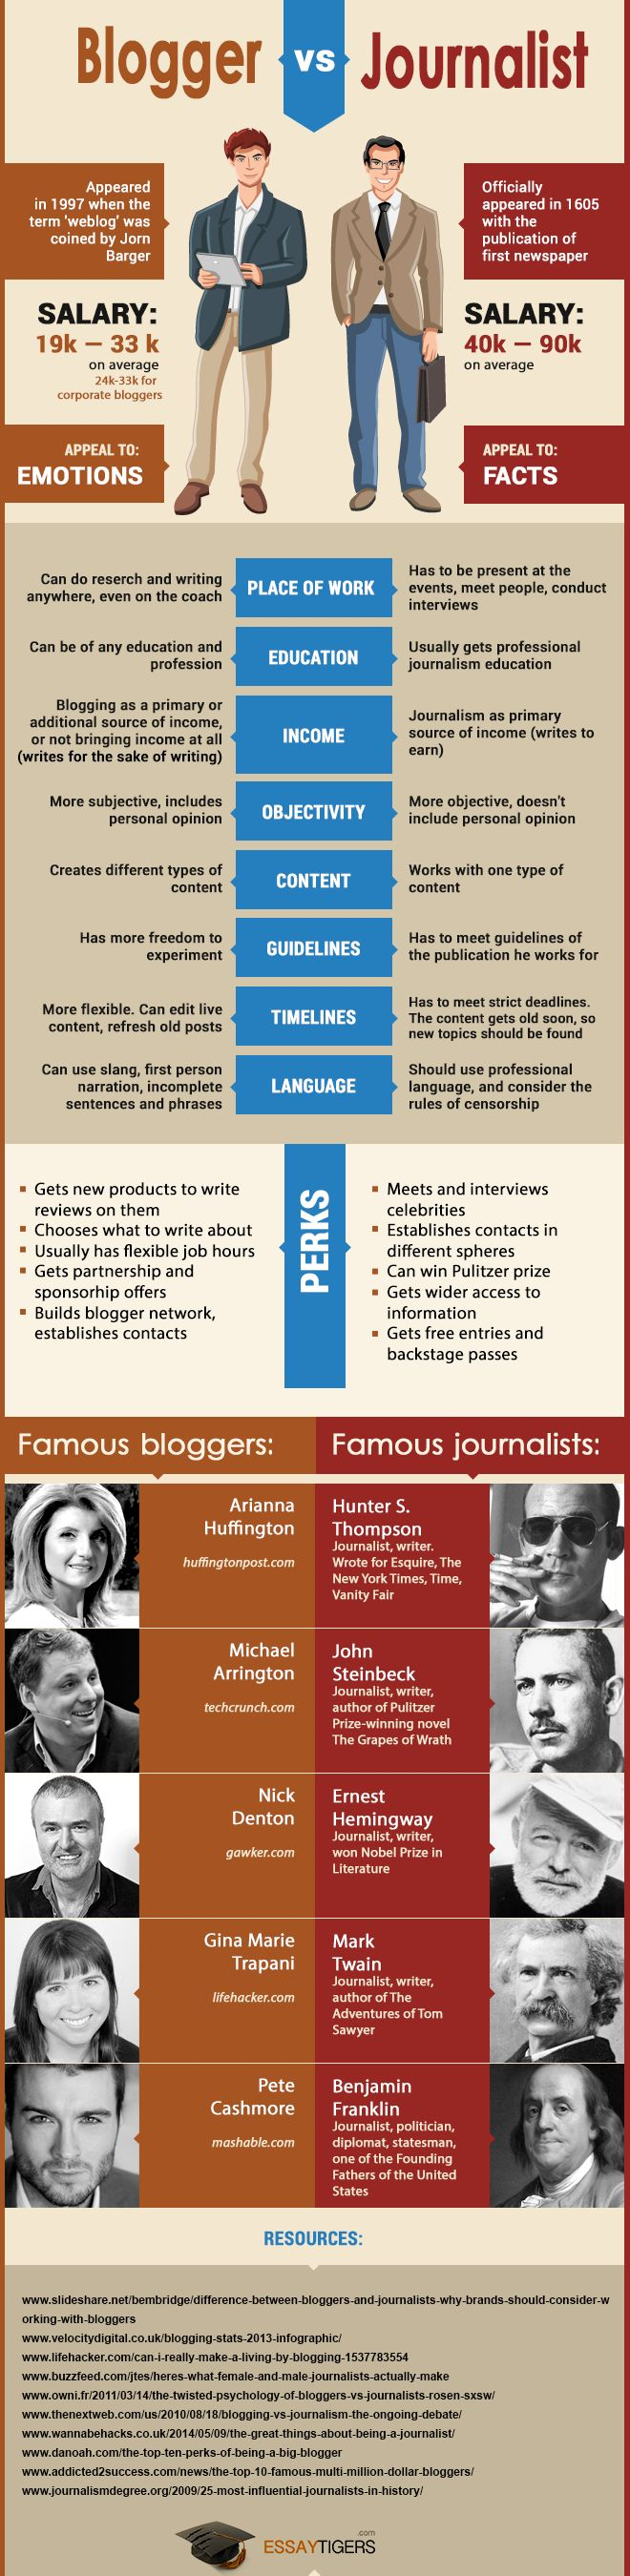 Blogger vs Journalist: The Ultimate Debate Solved